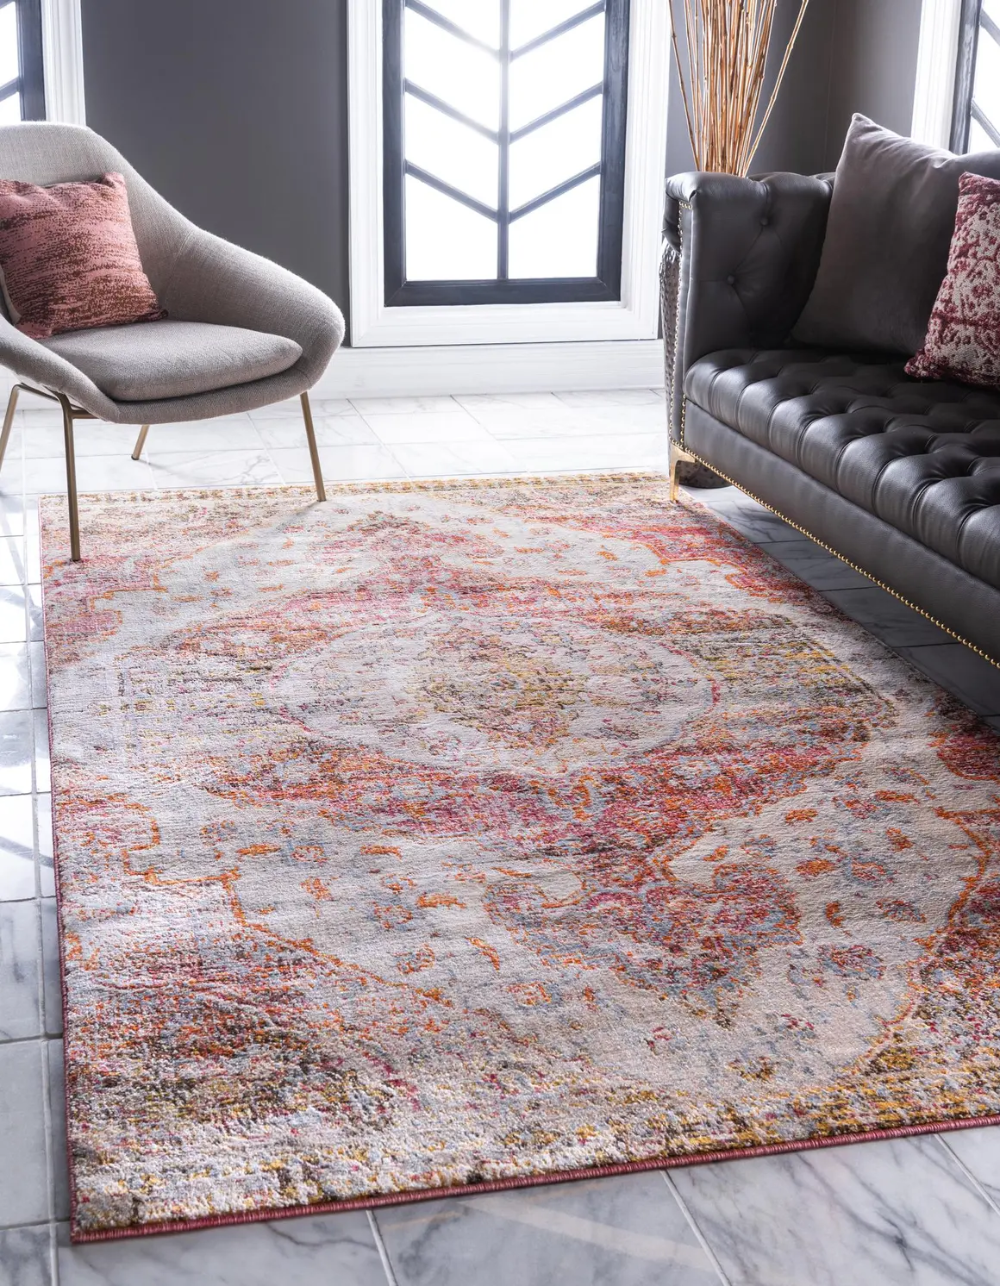 10+ Best Rugs For Living Room 8x10